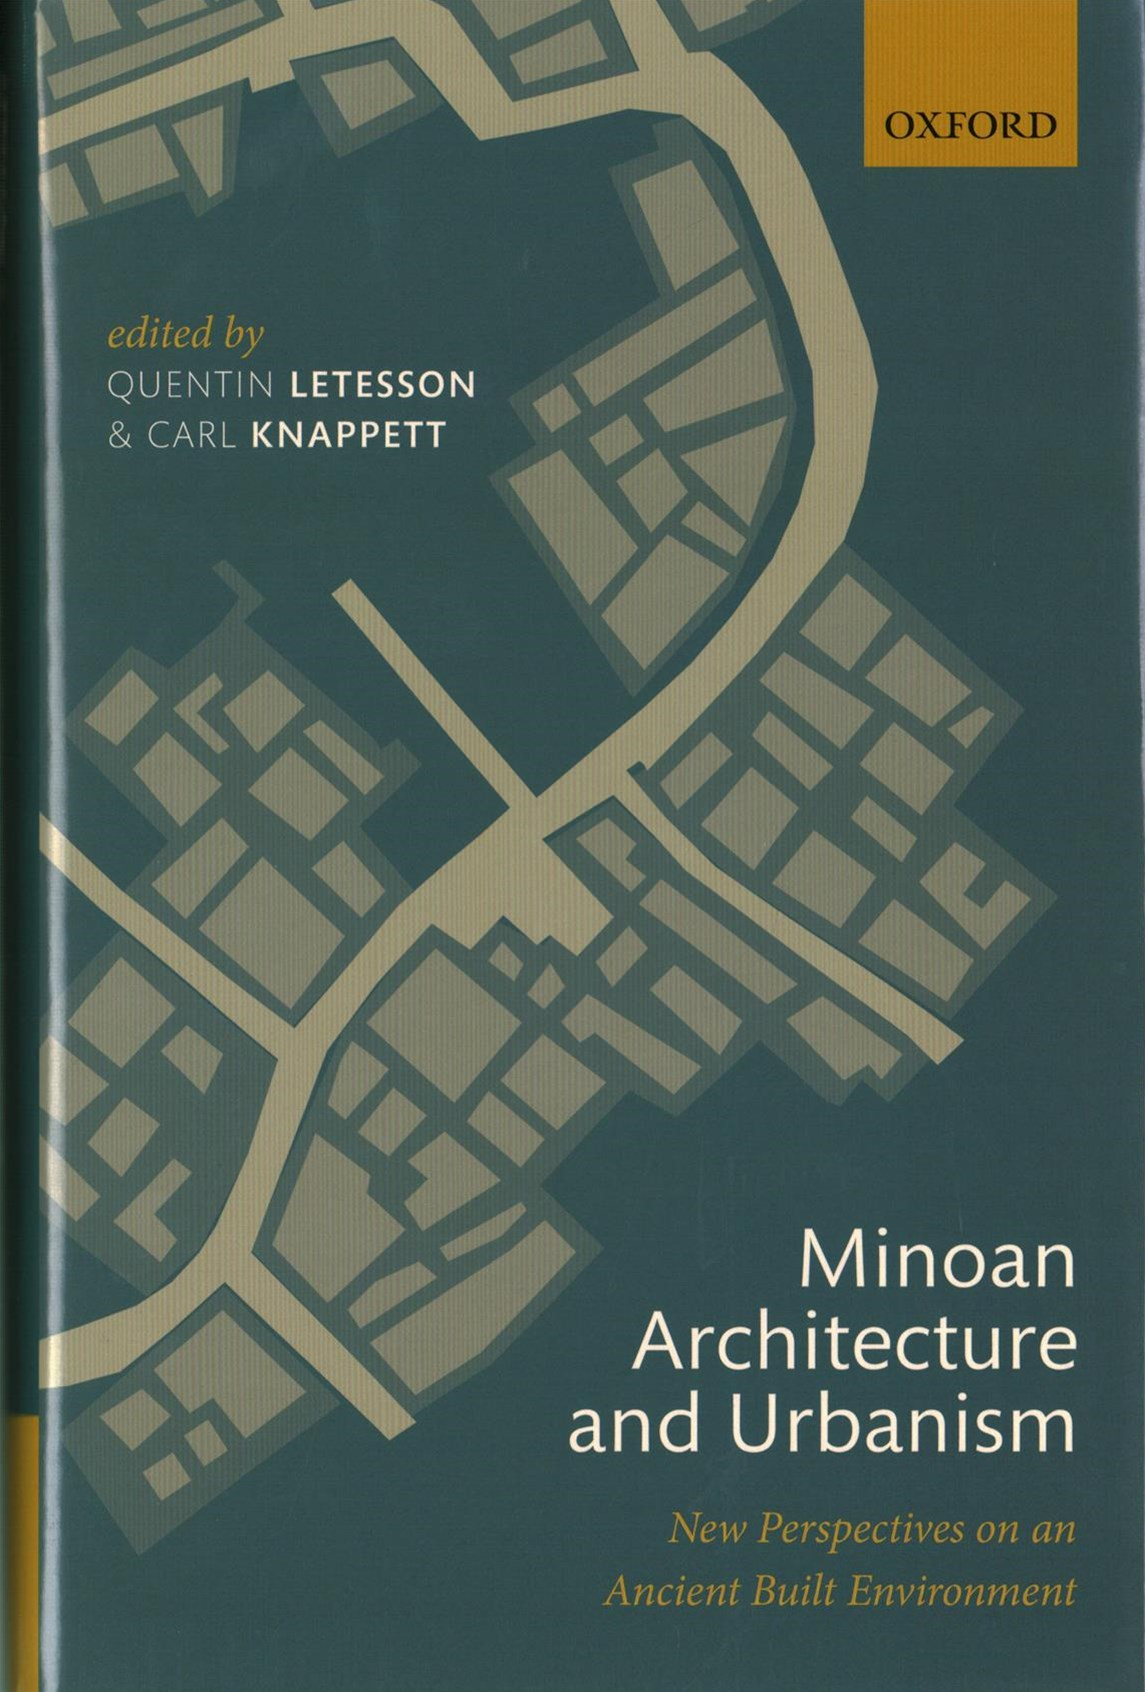 Minoan Architecture and Urbanism